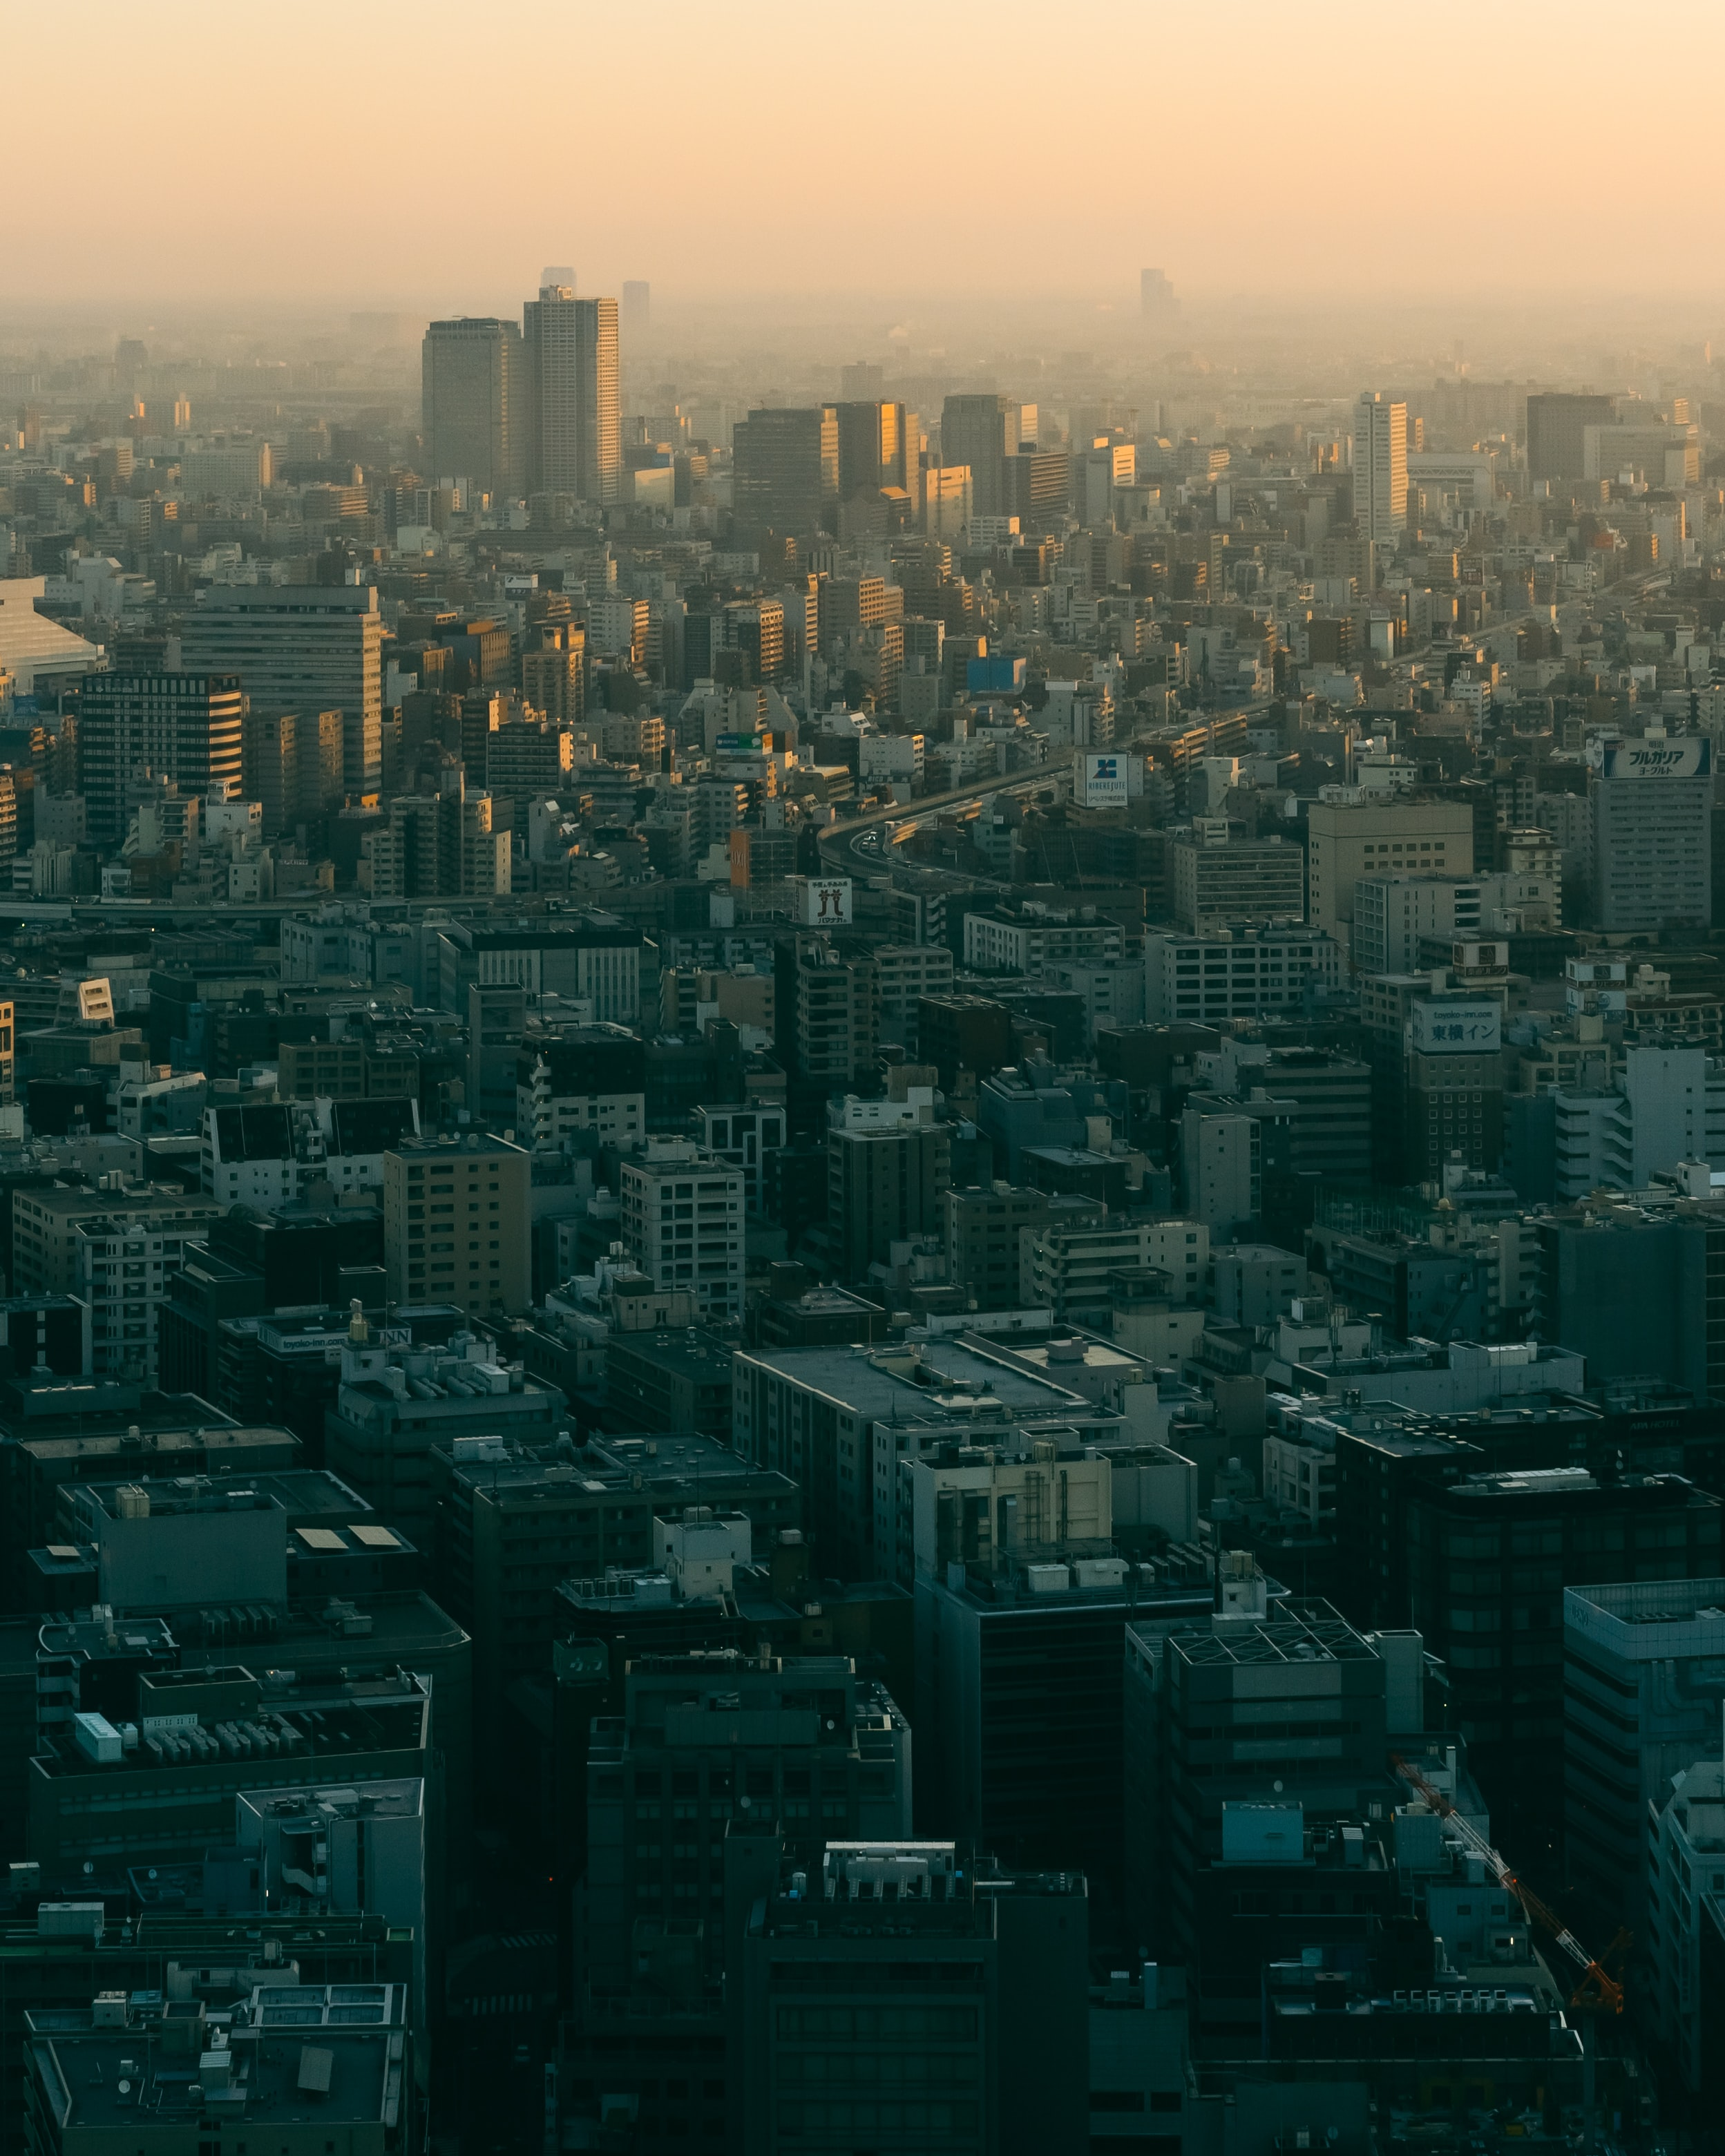 aerial photo of city buildings